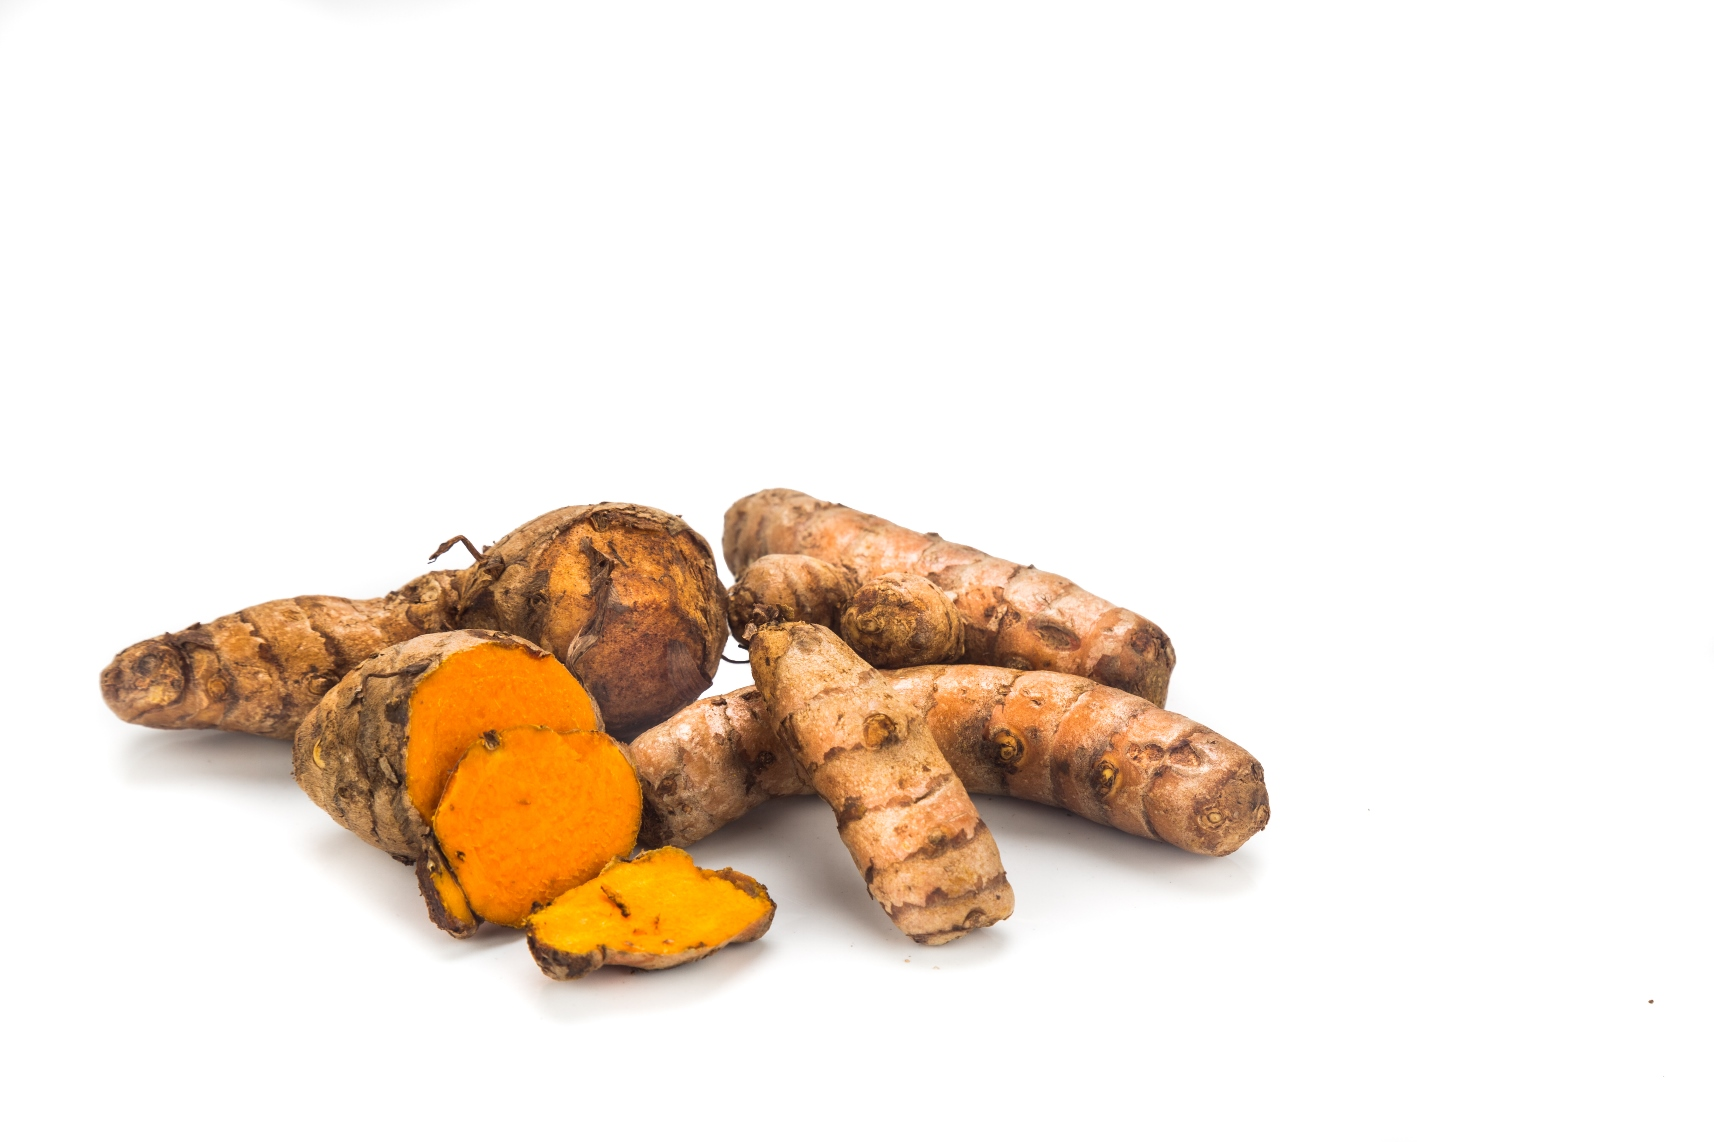 Super Spice. Is turmeric the most effective medicinal spice?